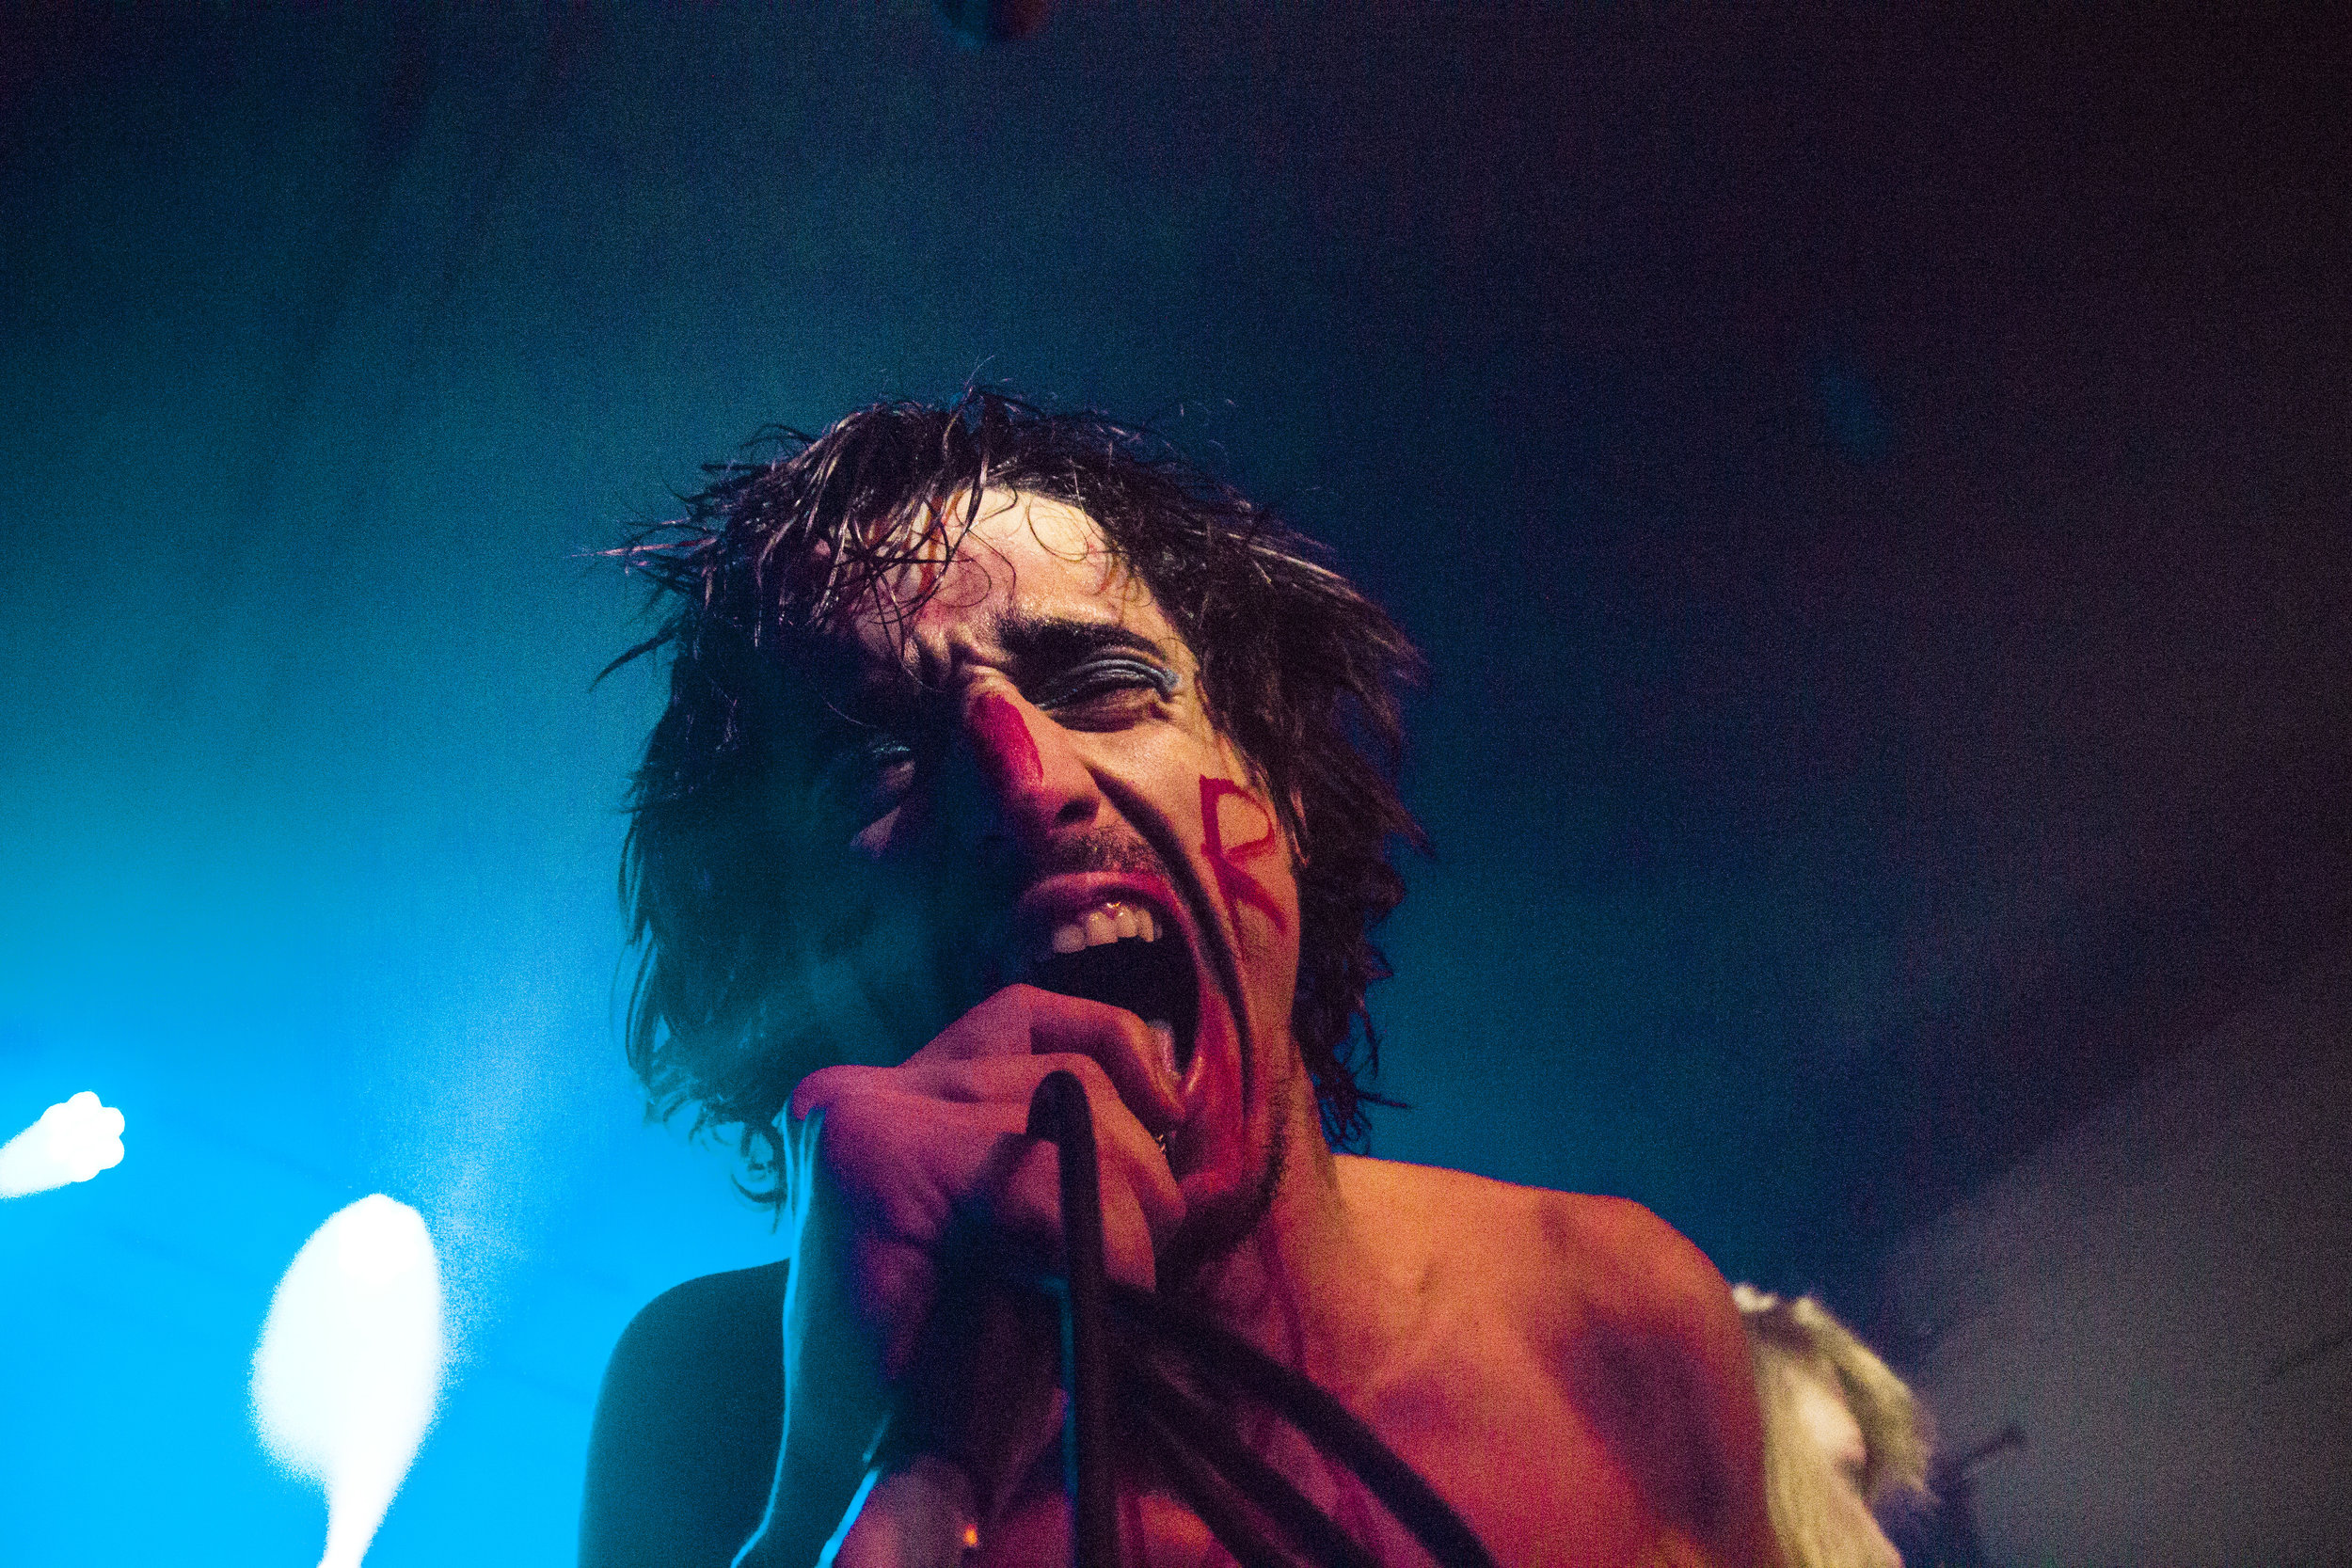 Lias Kaci Saoudi of Fat White Family & The Moonlandingz shot by Katie Willoughby.